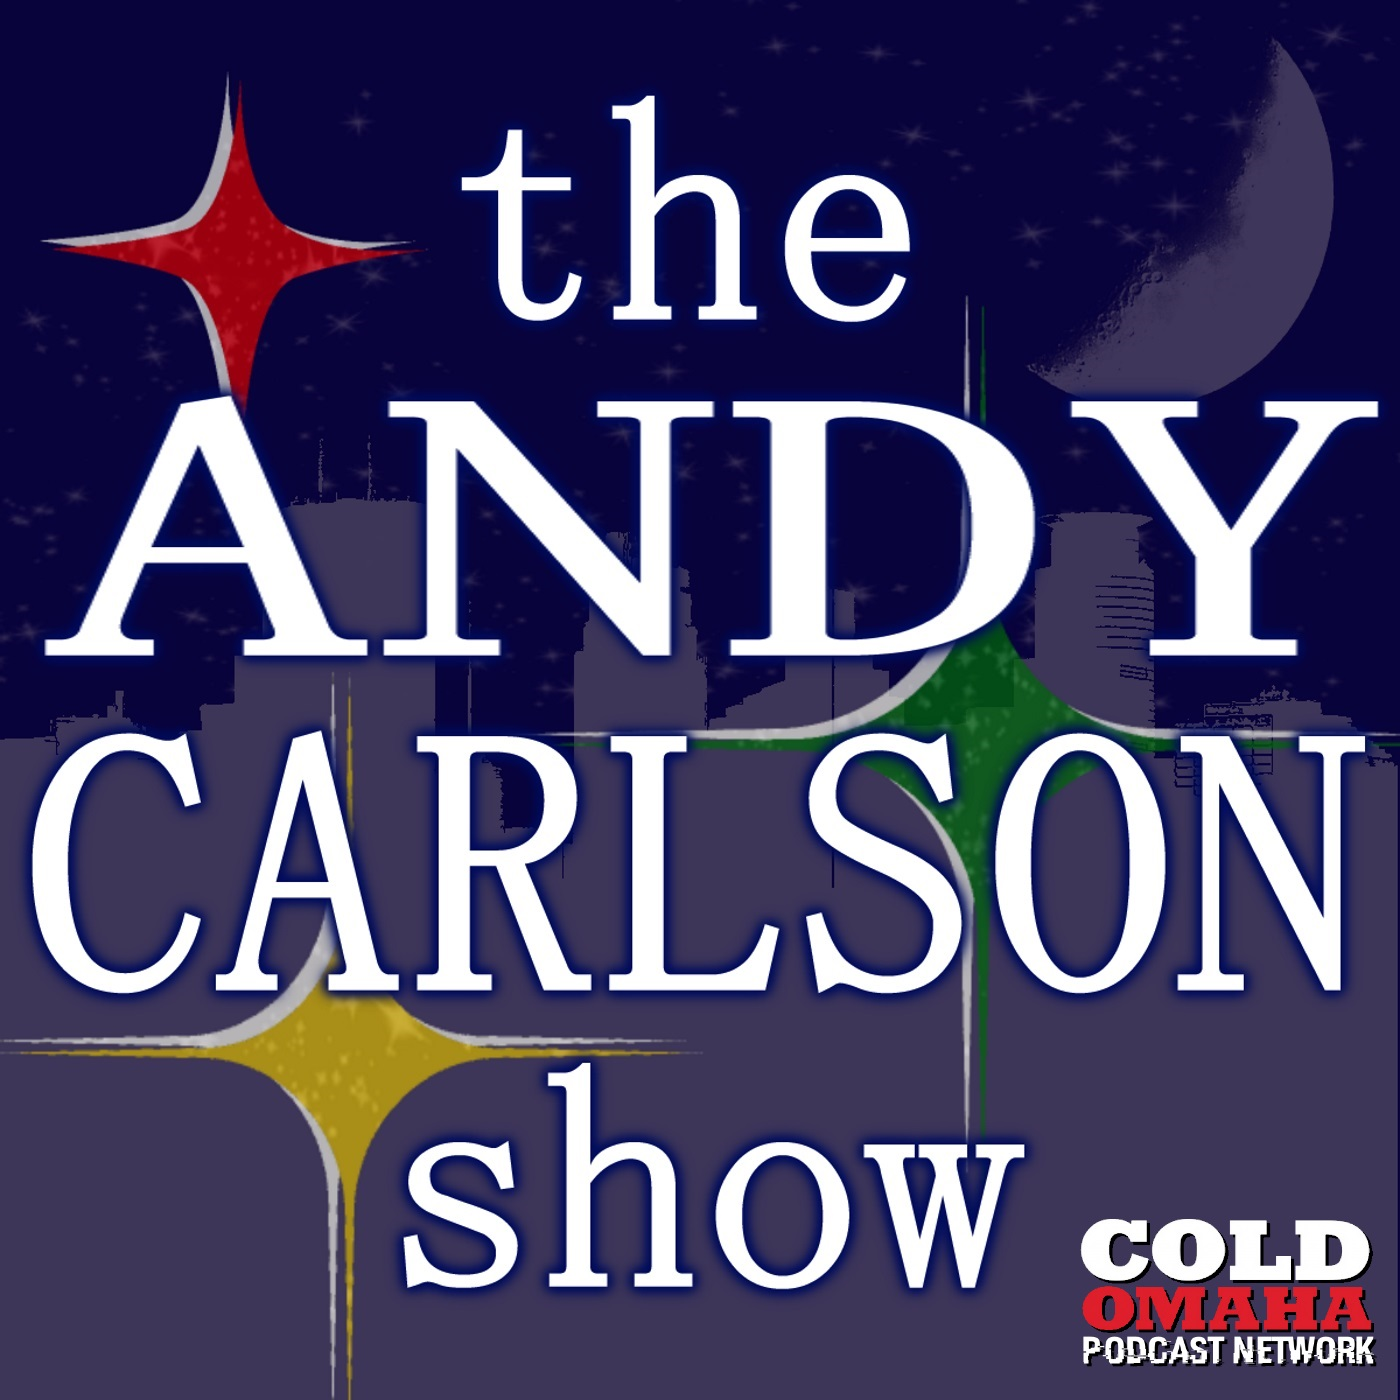 CO - The Andy Carlson Show